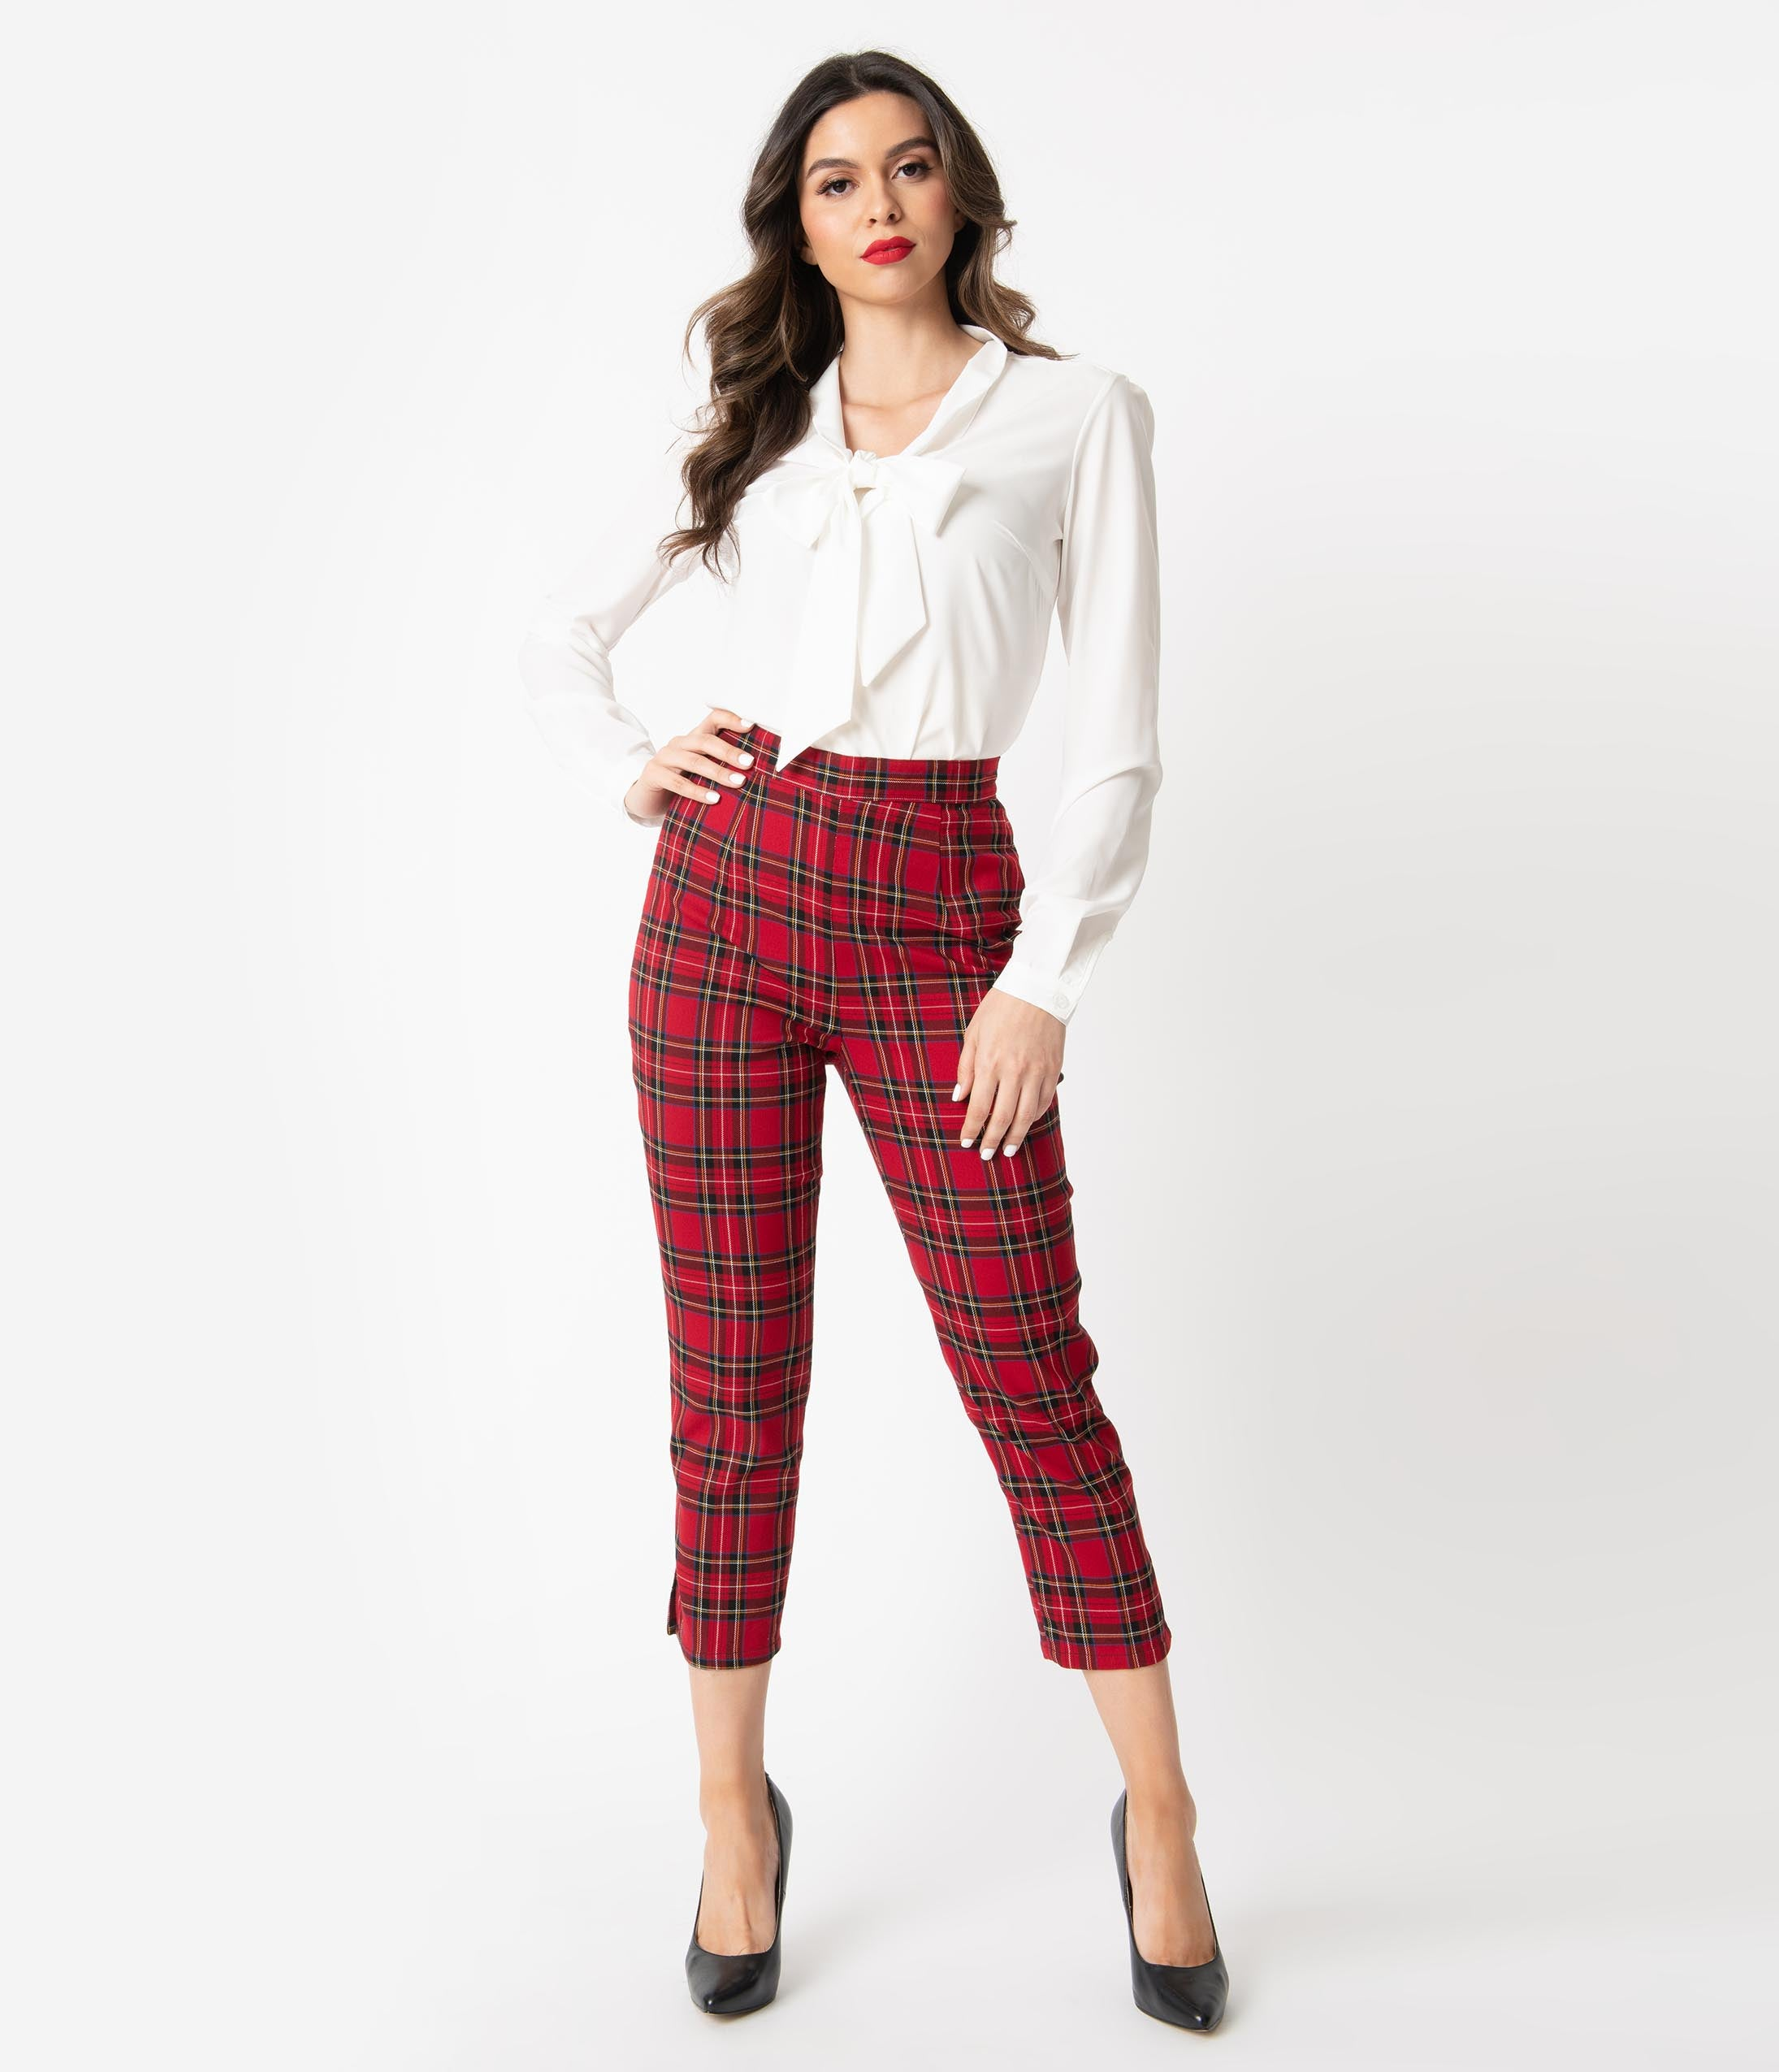 1950s Pants History for Women Hell Bunny 1950S Red Plaid Irvine Cigarette Capris $48.00 AT vintagedancer.com